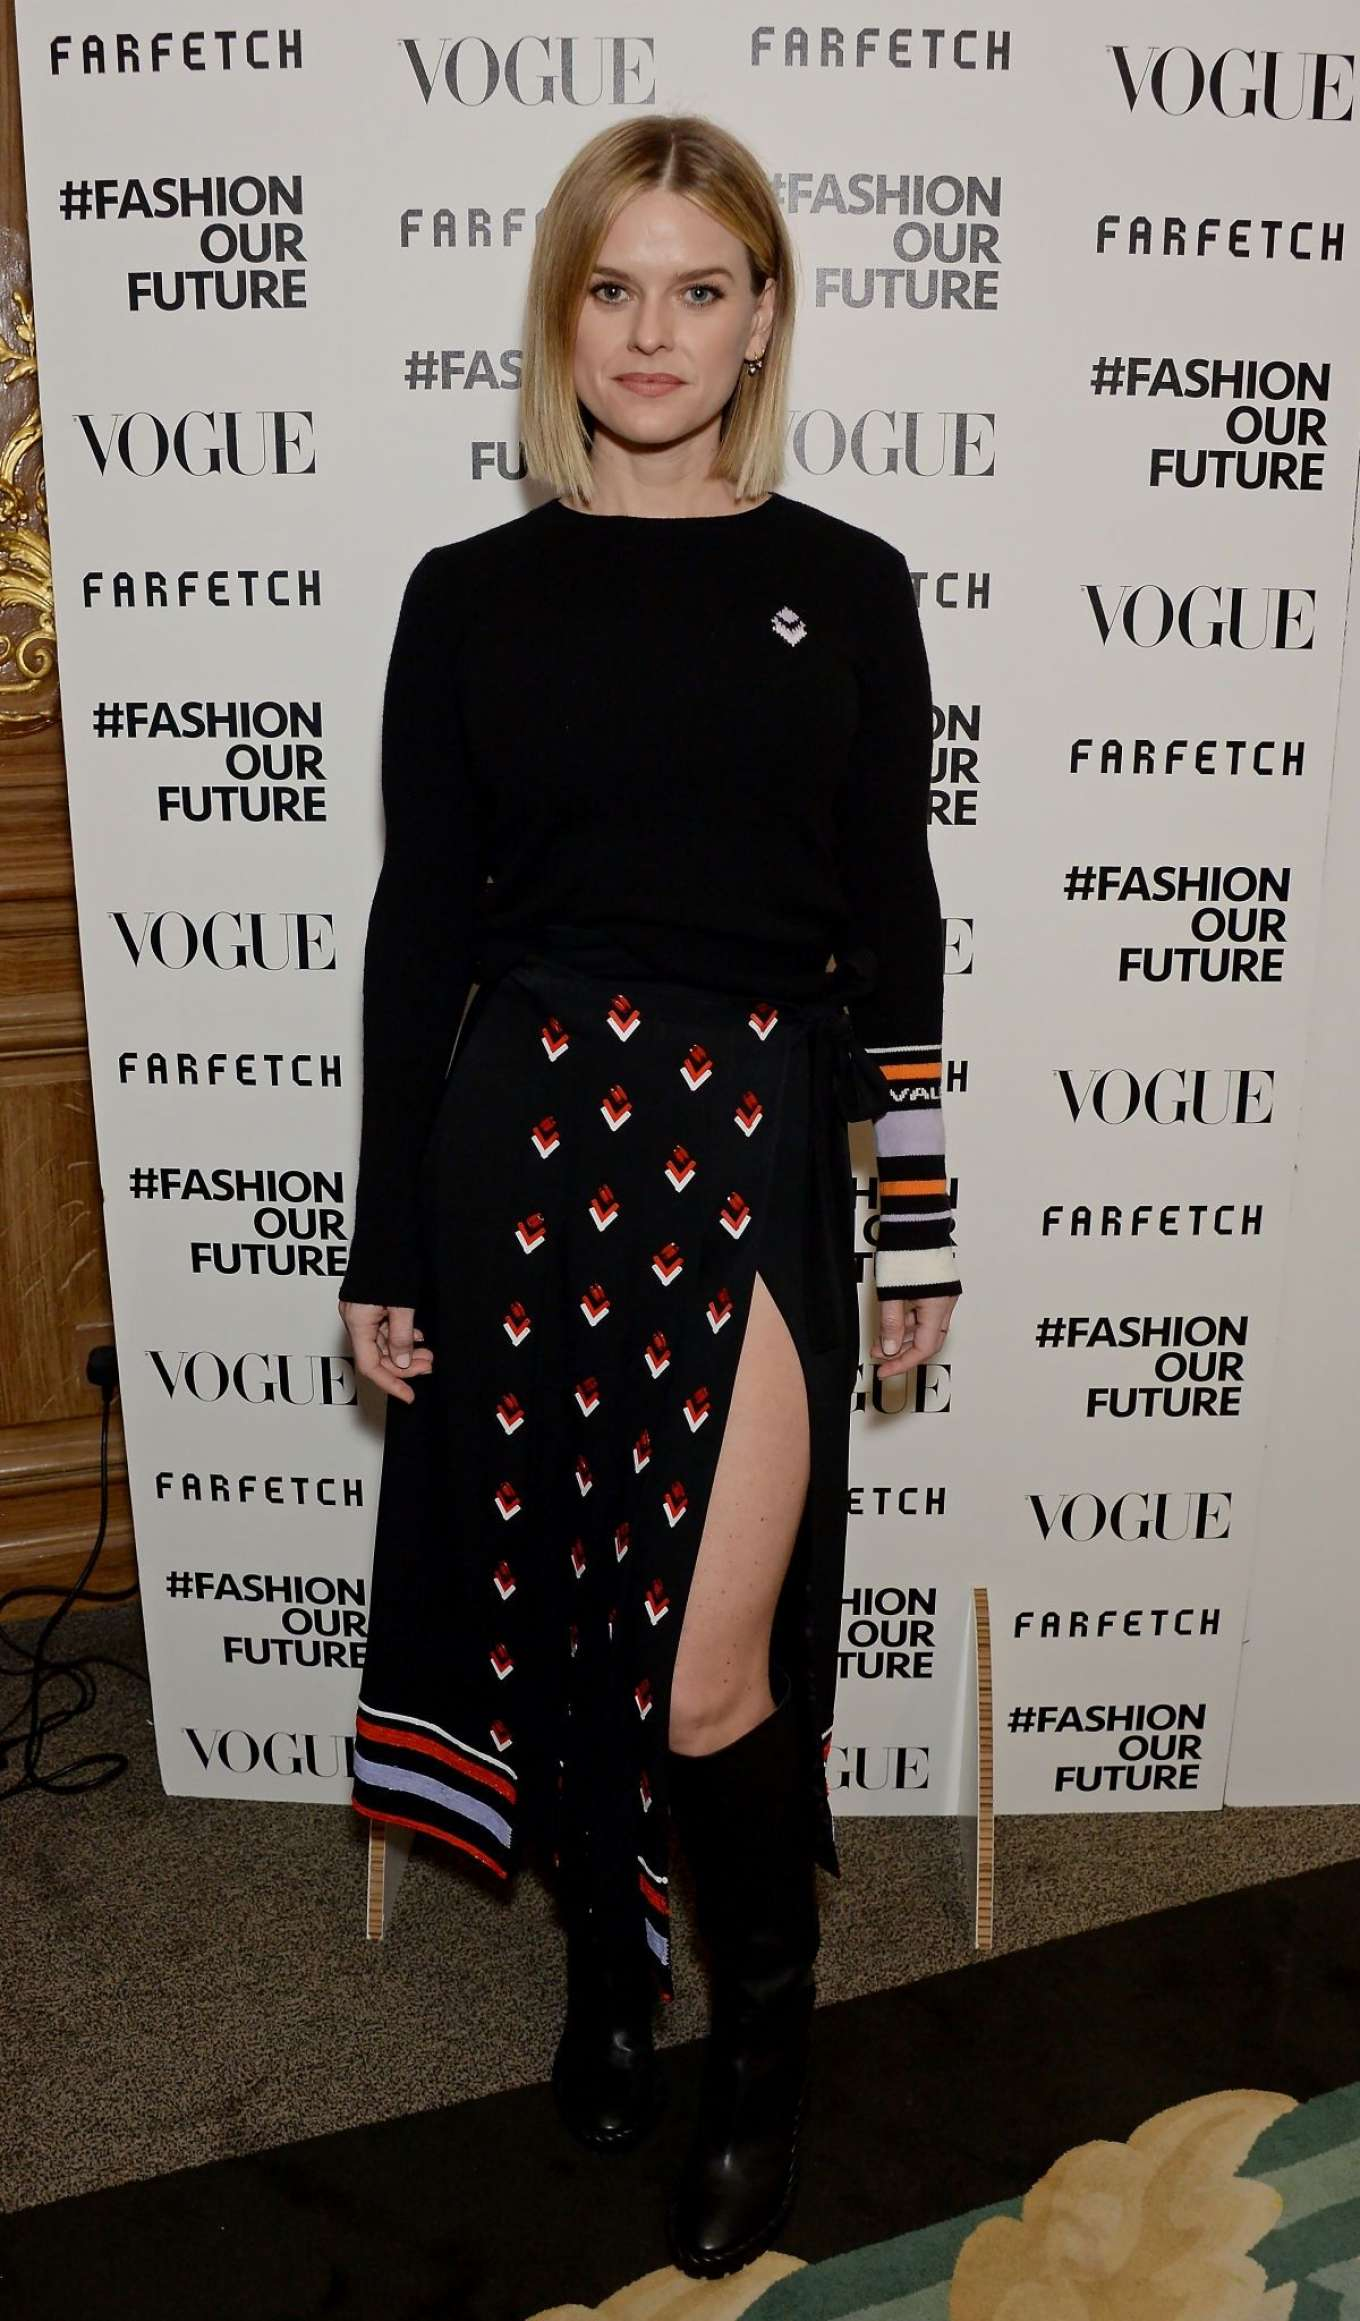 Alice Eve - Fashion Our Future launch event at 2020 London Fashion Week